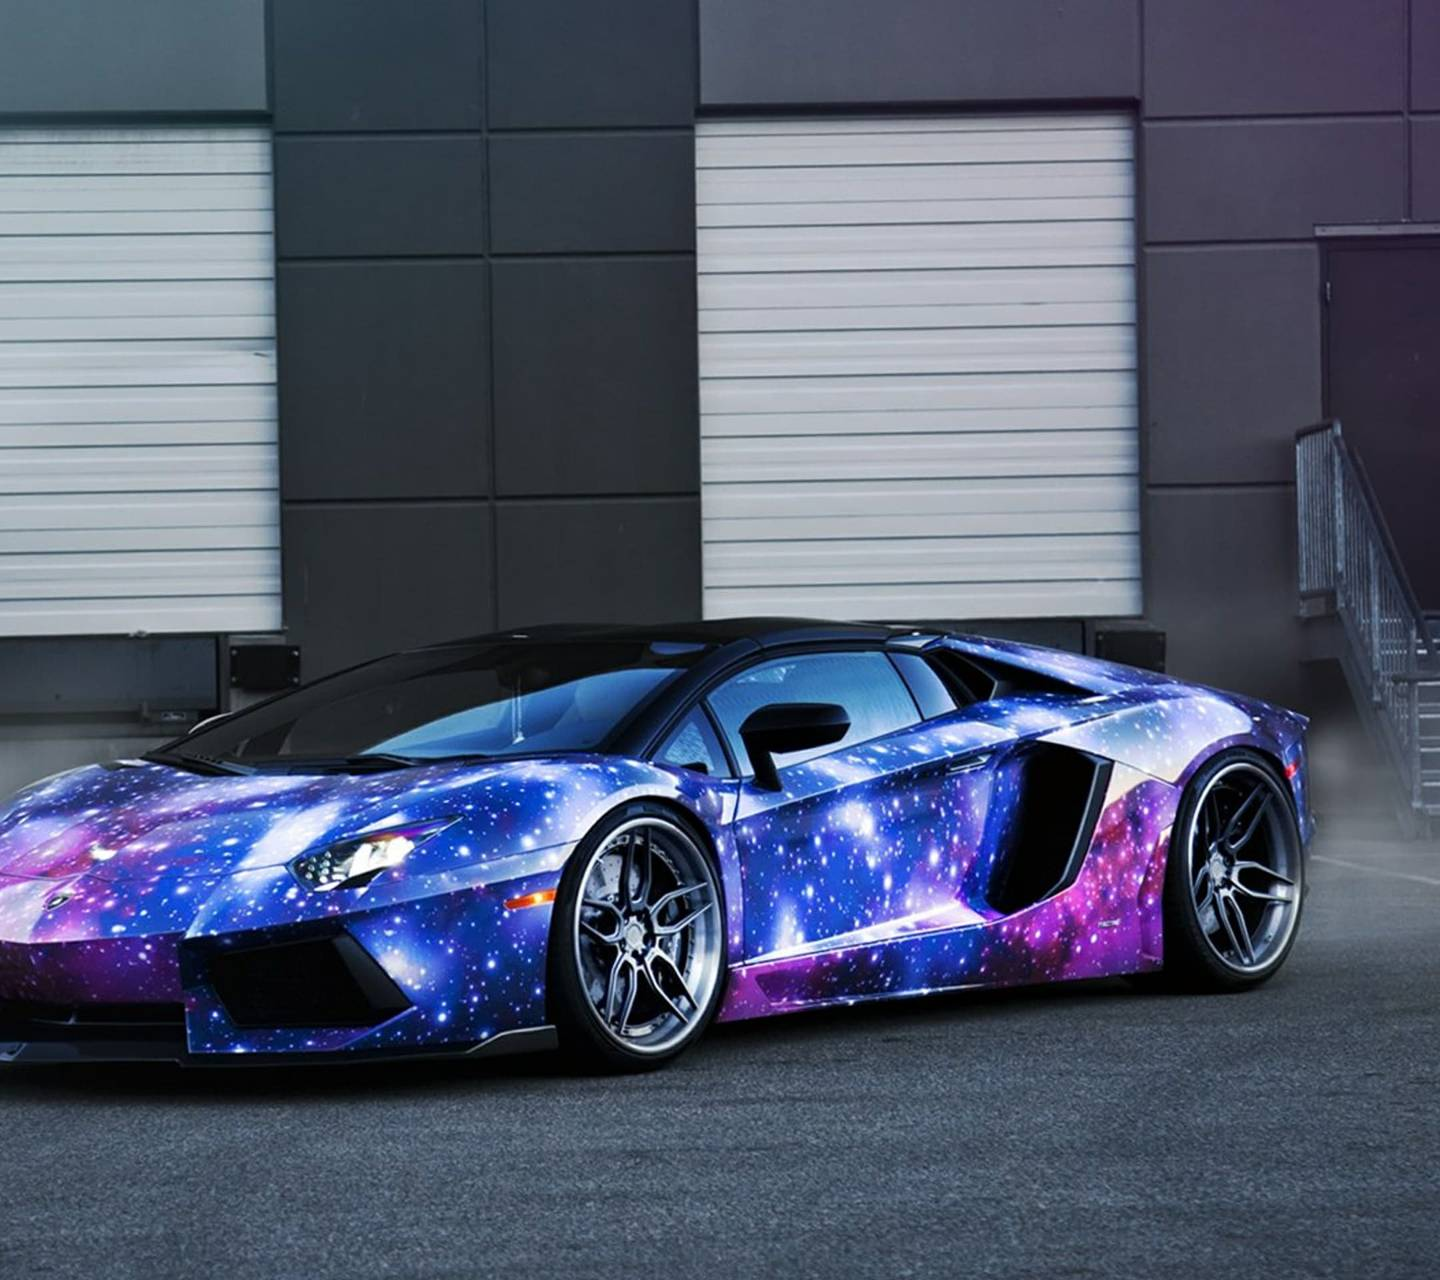 Galaxy Lambo Wallpaper By Primalhero035 6c Free On Zedge